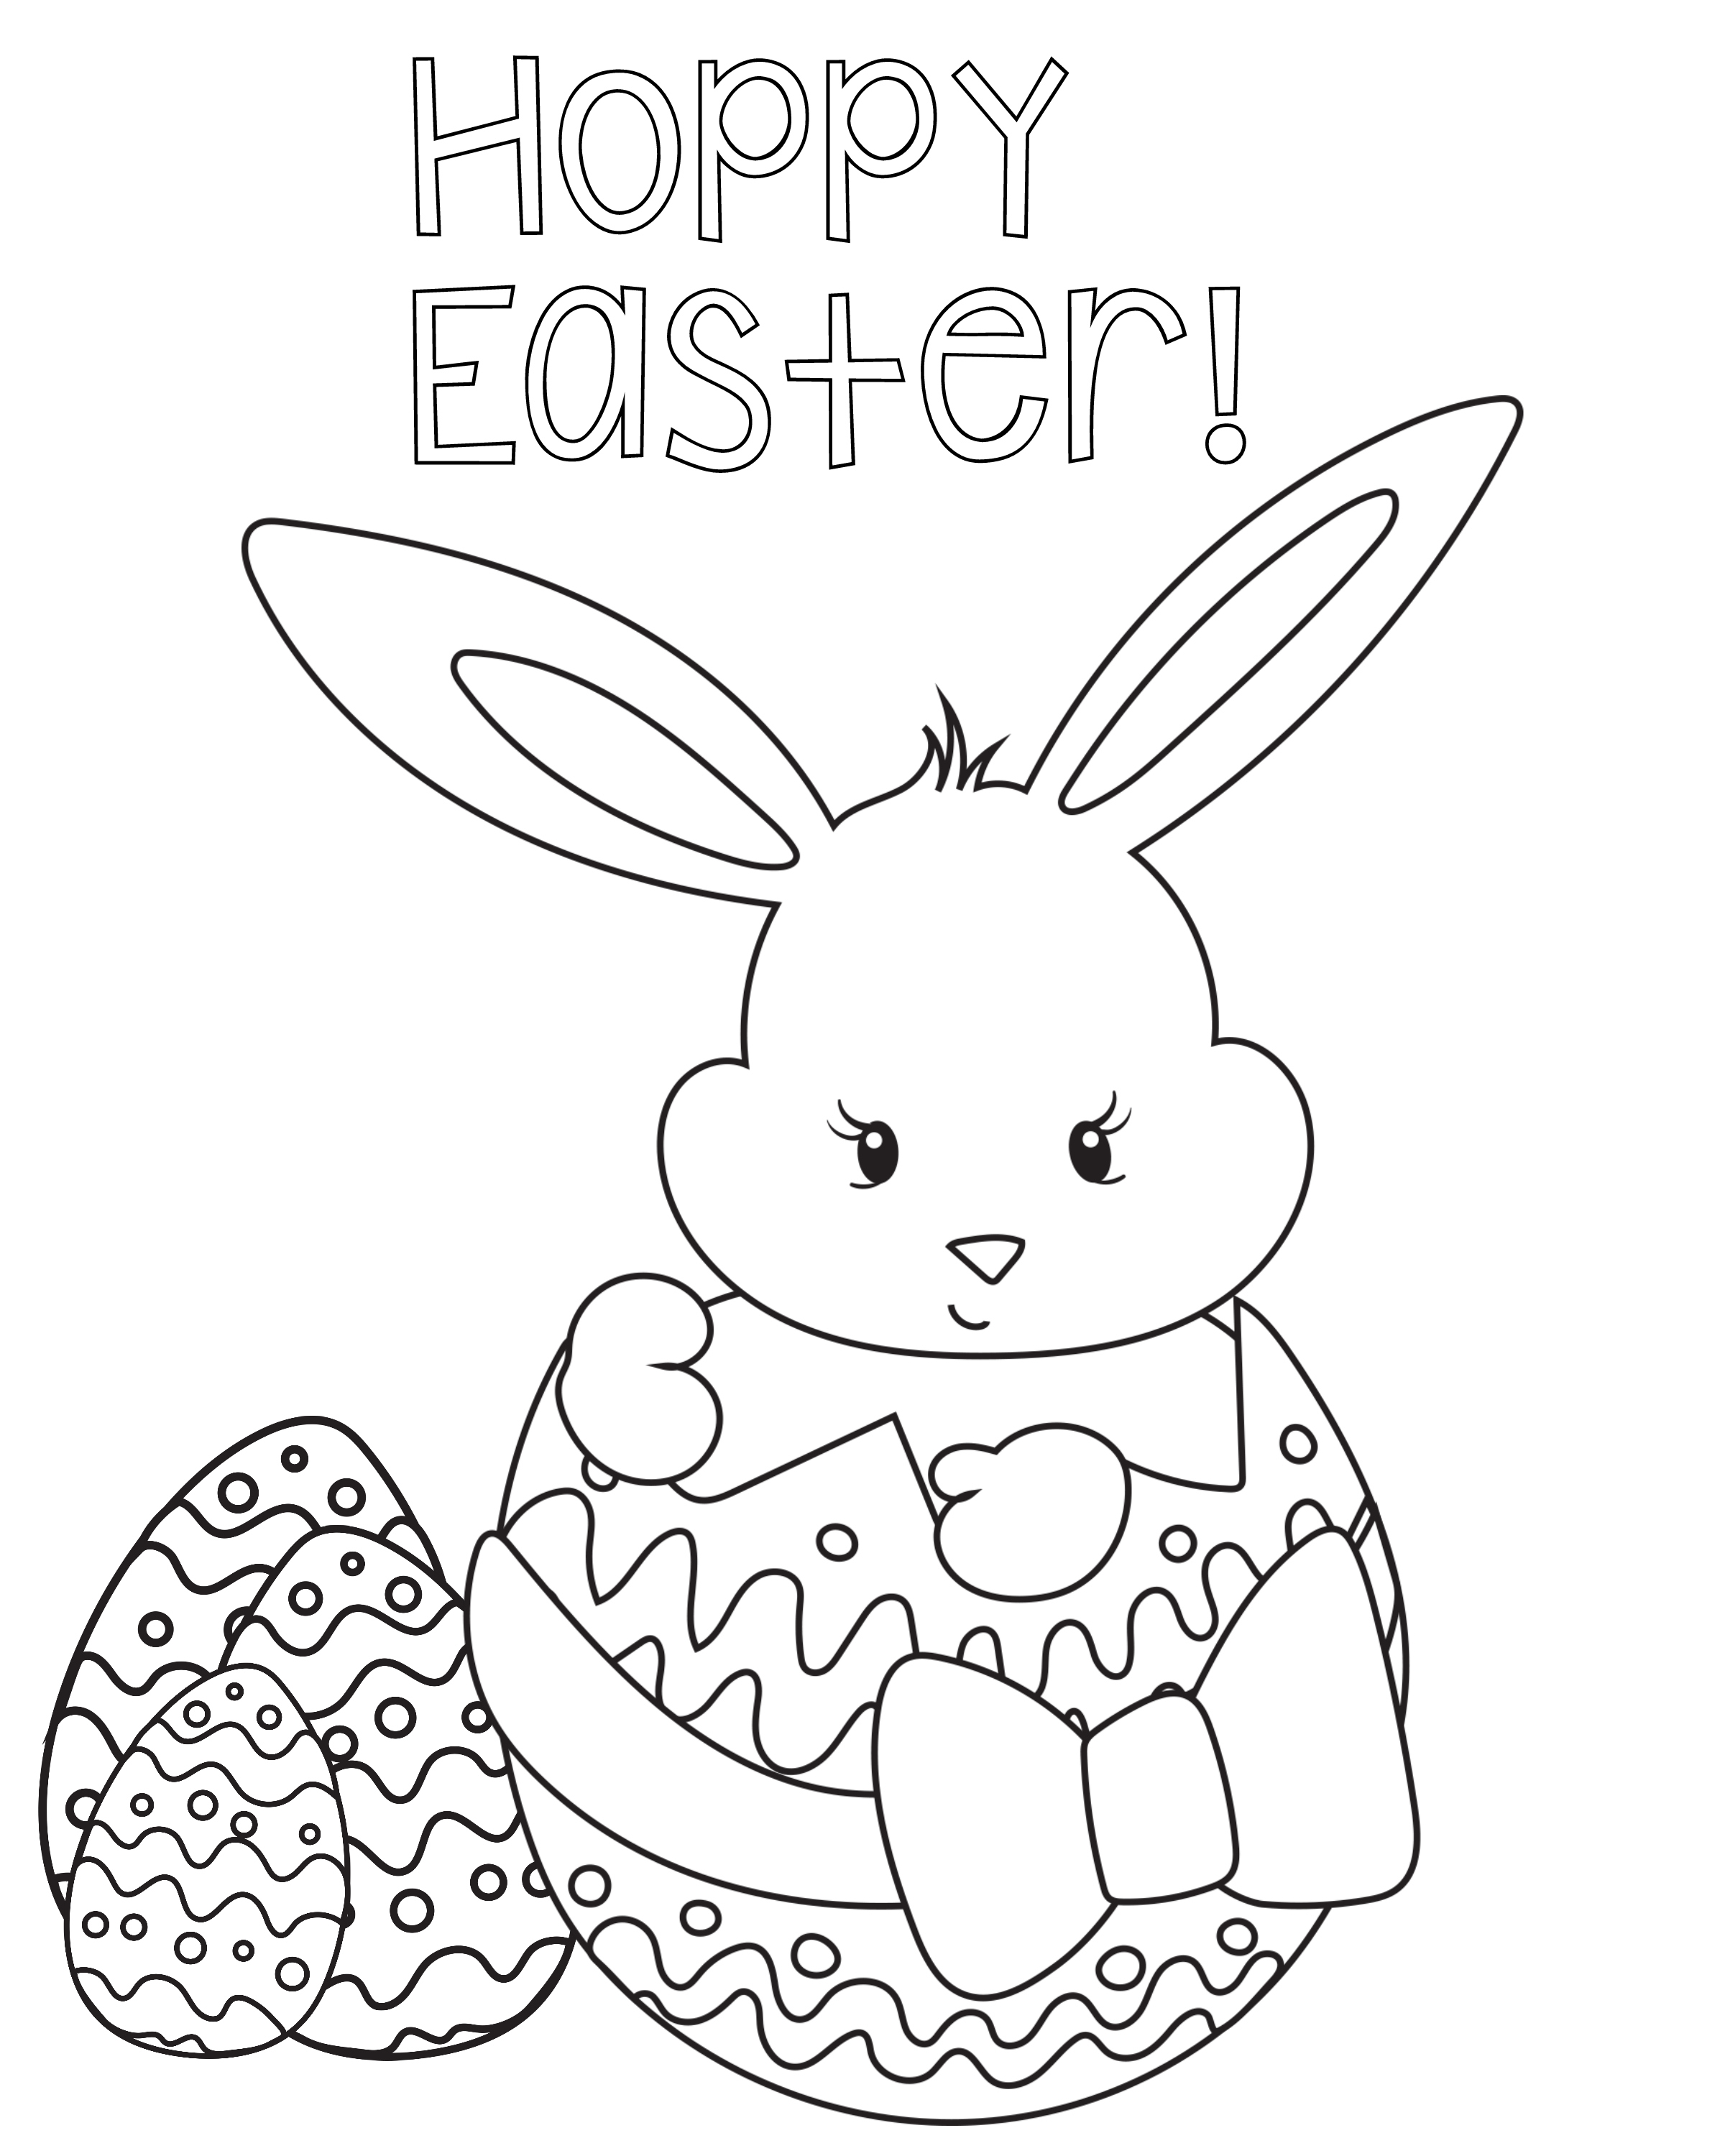 Free Printable Coloring Pages For Kids Coloring Page Coloring Page Bird Pages Free Printable Realistic